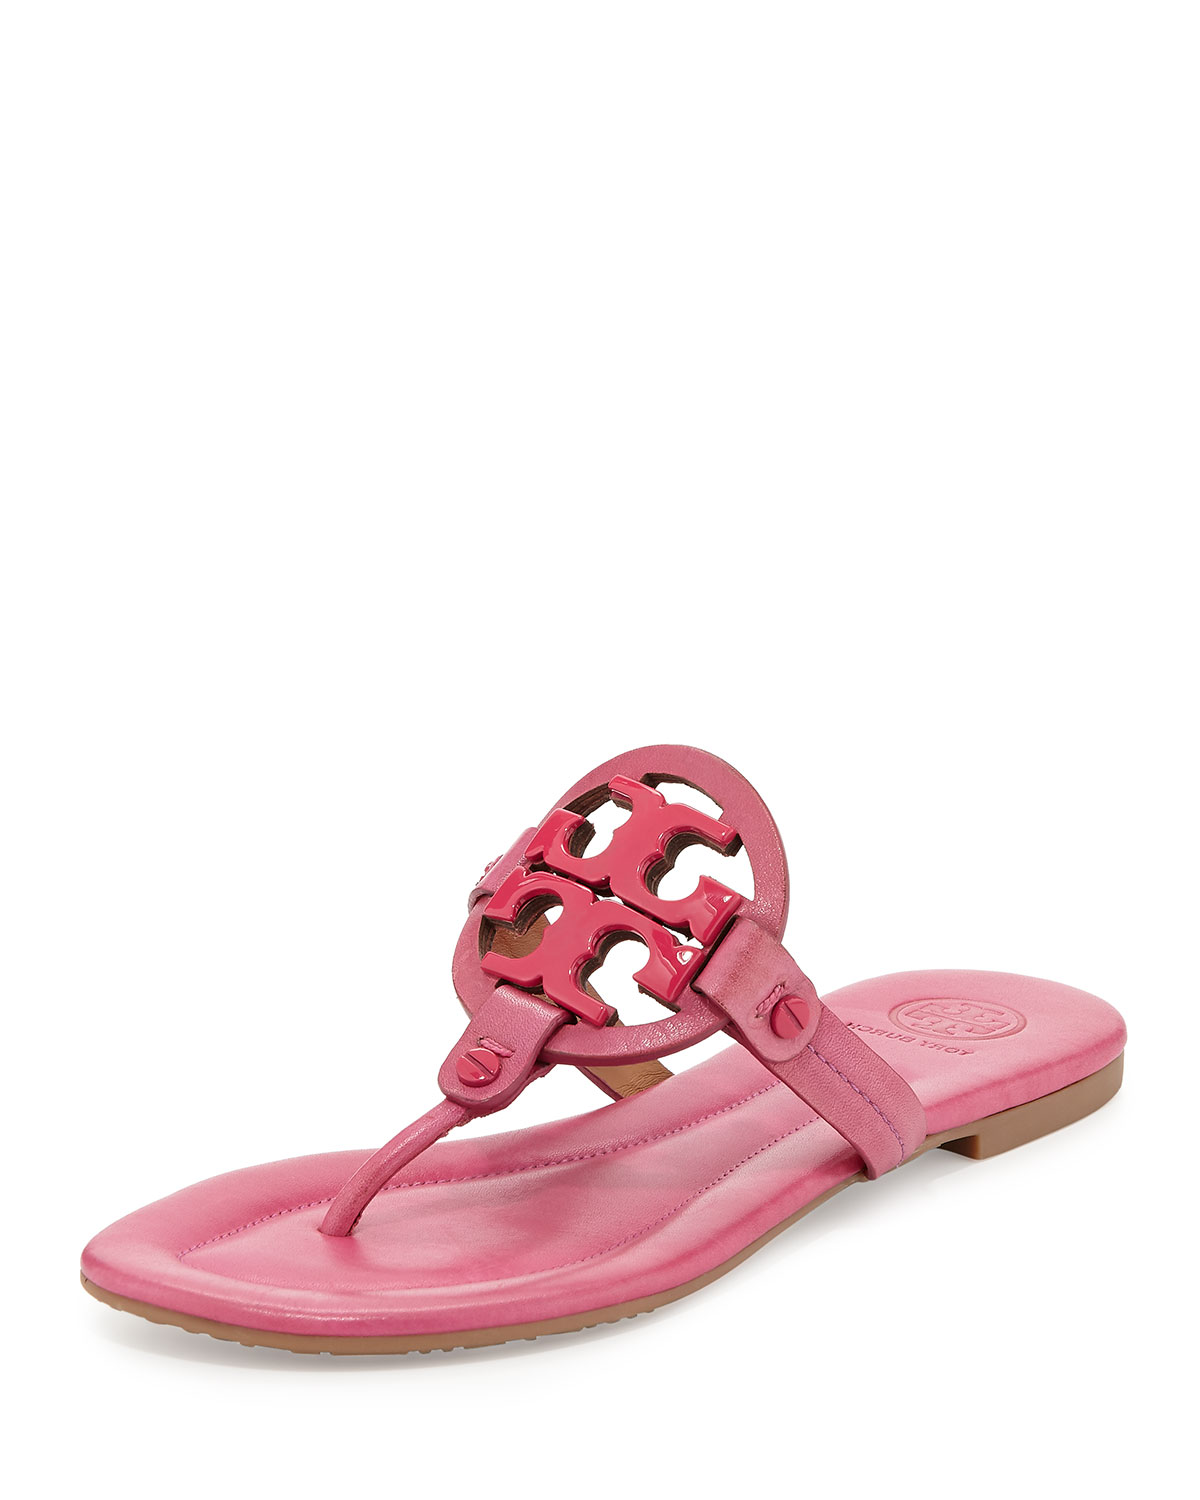 ff9b12e58 Tory Burch Miller 2 Logo Leather Sandals